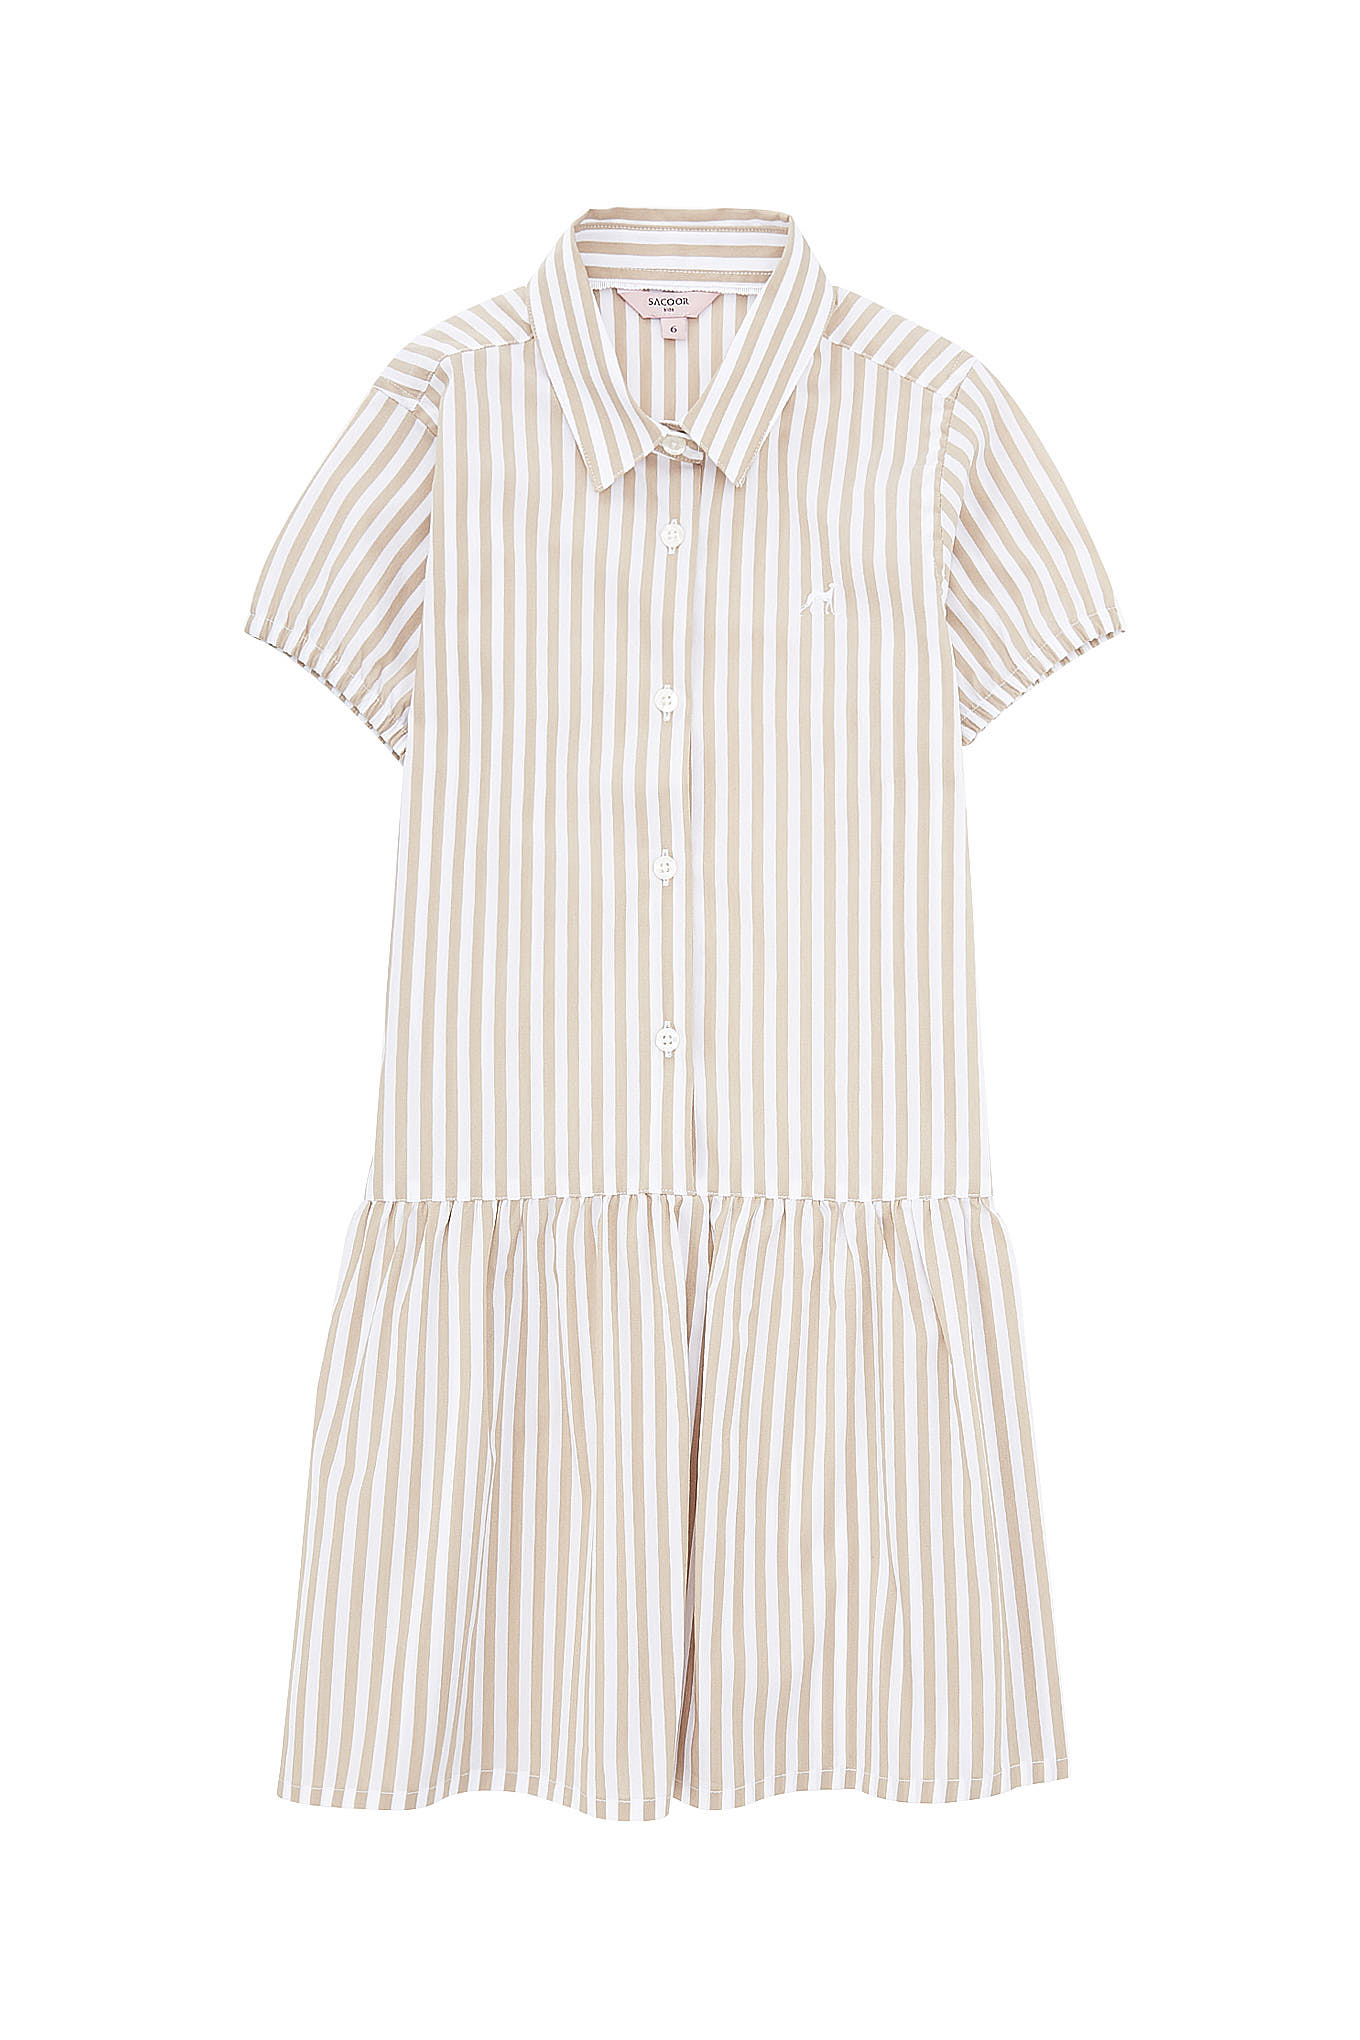 Shirt Dress Stripes Casual Girl